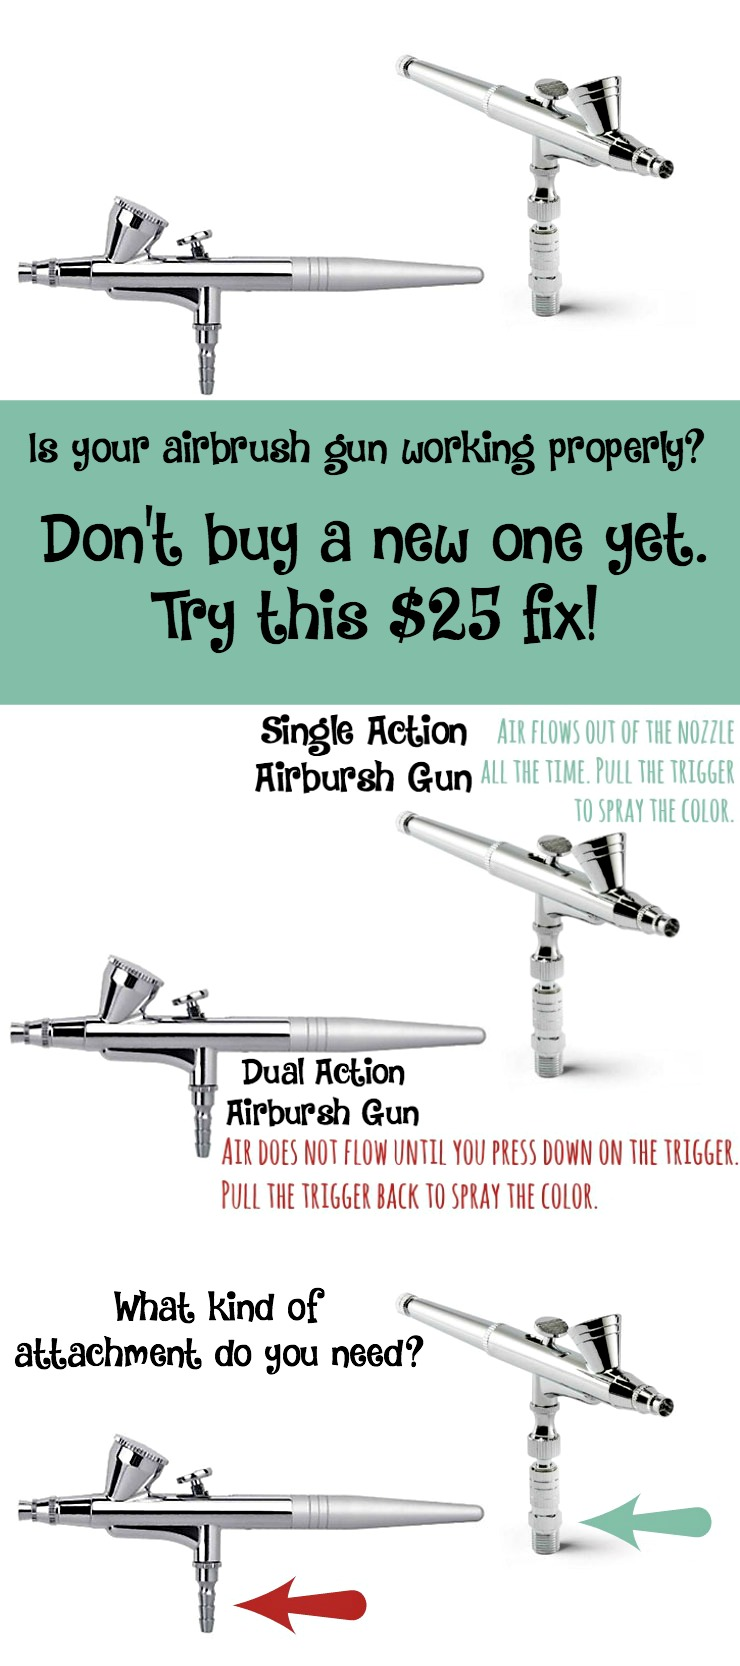 Don't buy a New Airbrush System-Try an Airbrush Gun Replacement   The Bearfoot Baker